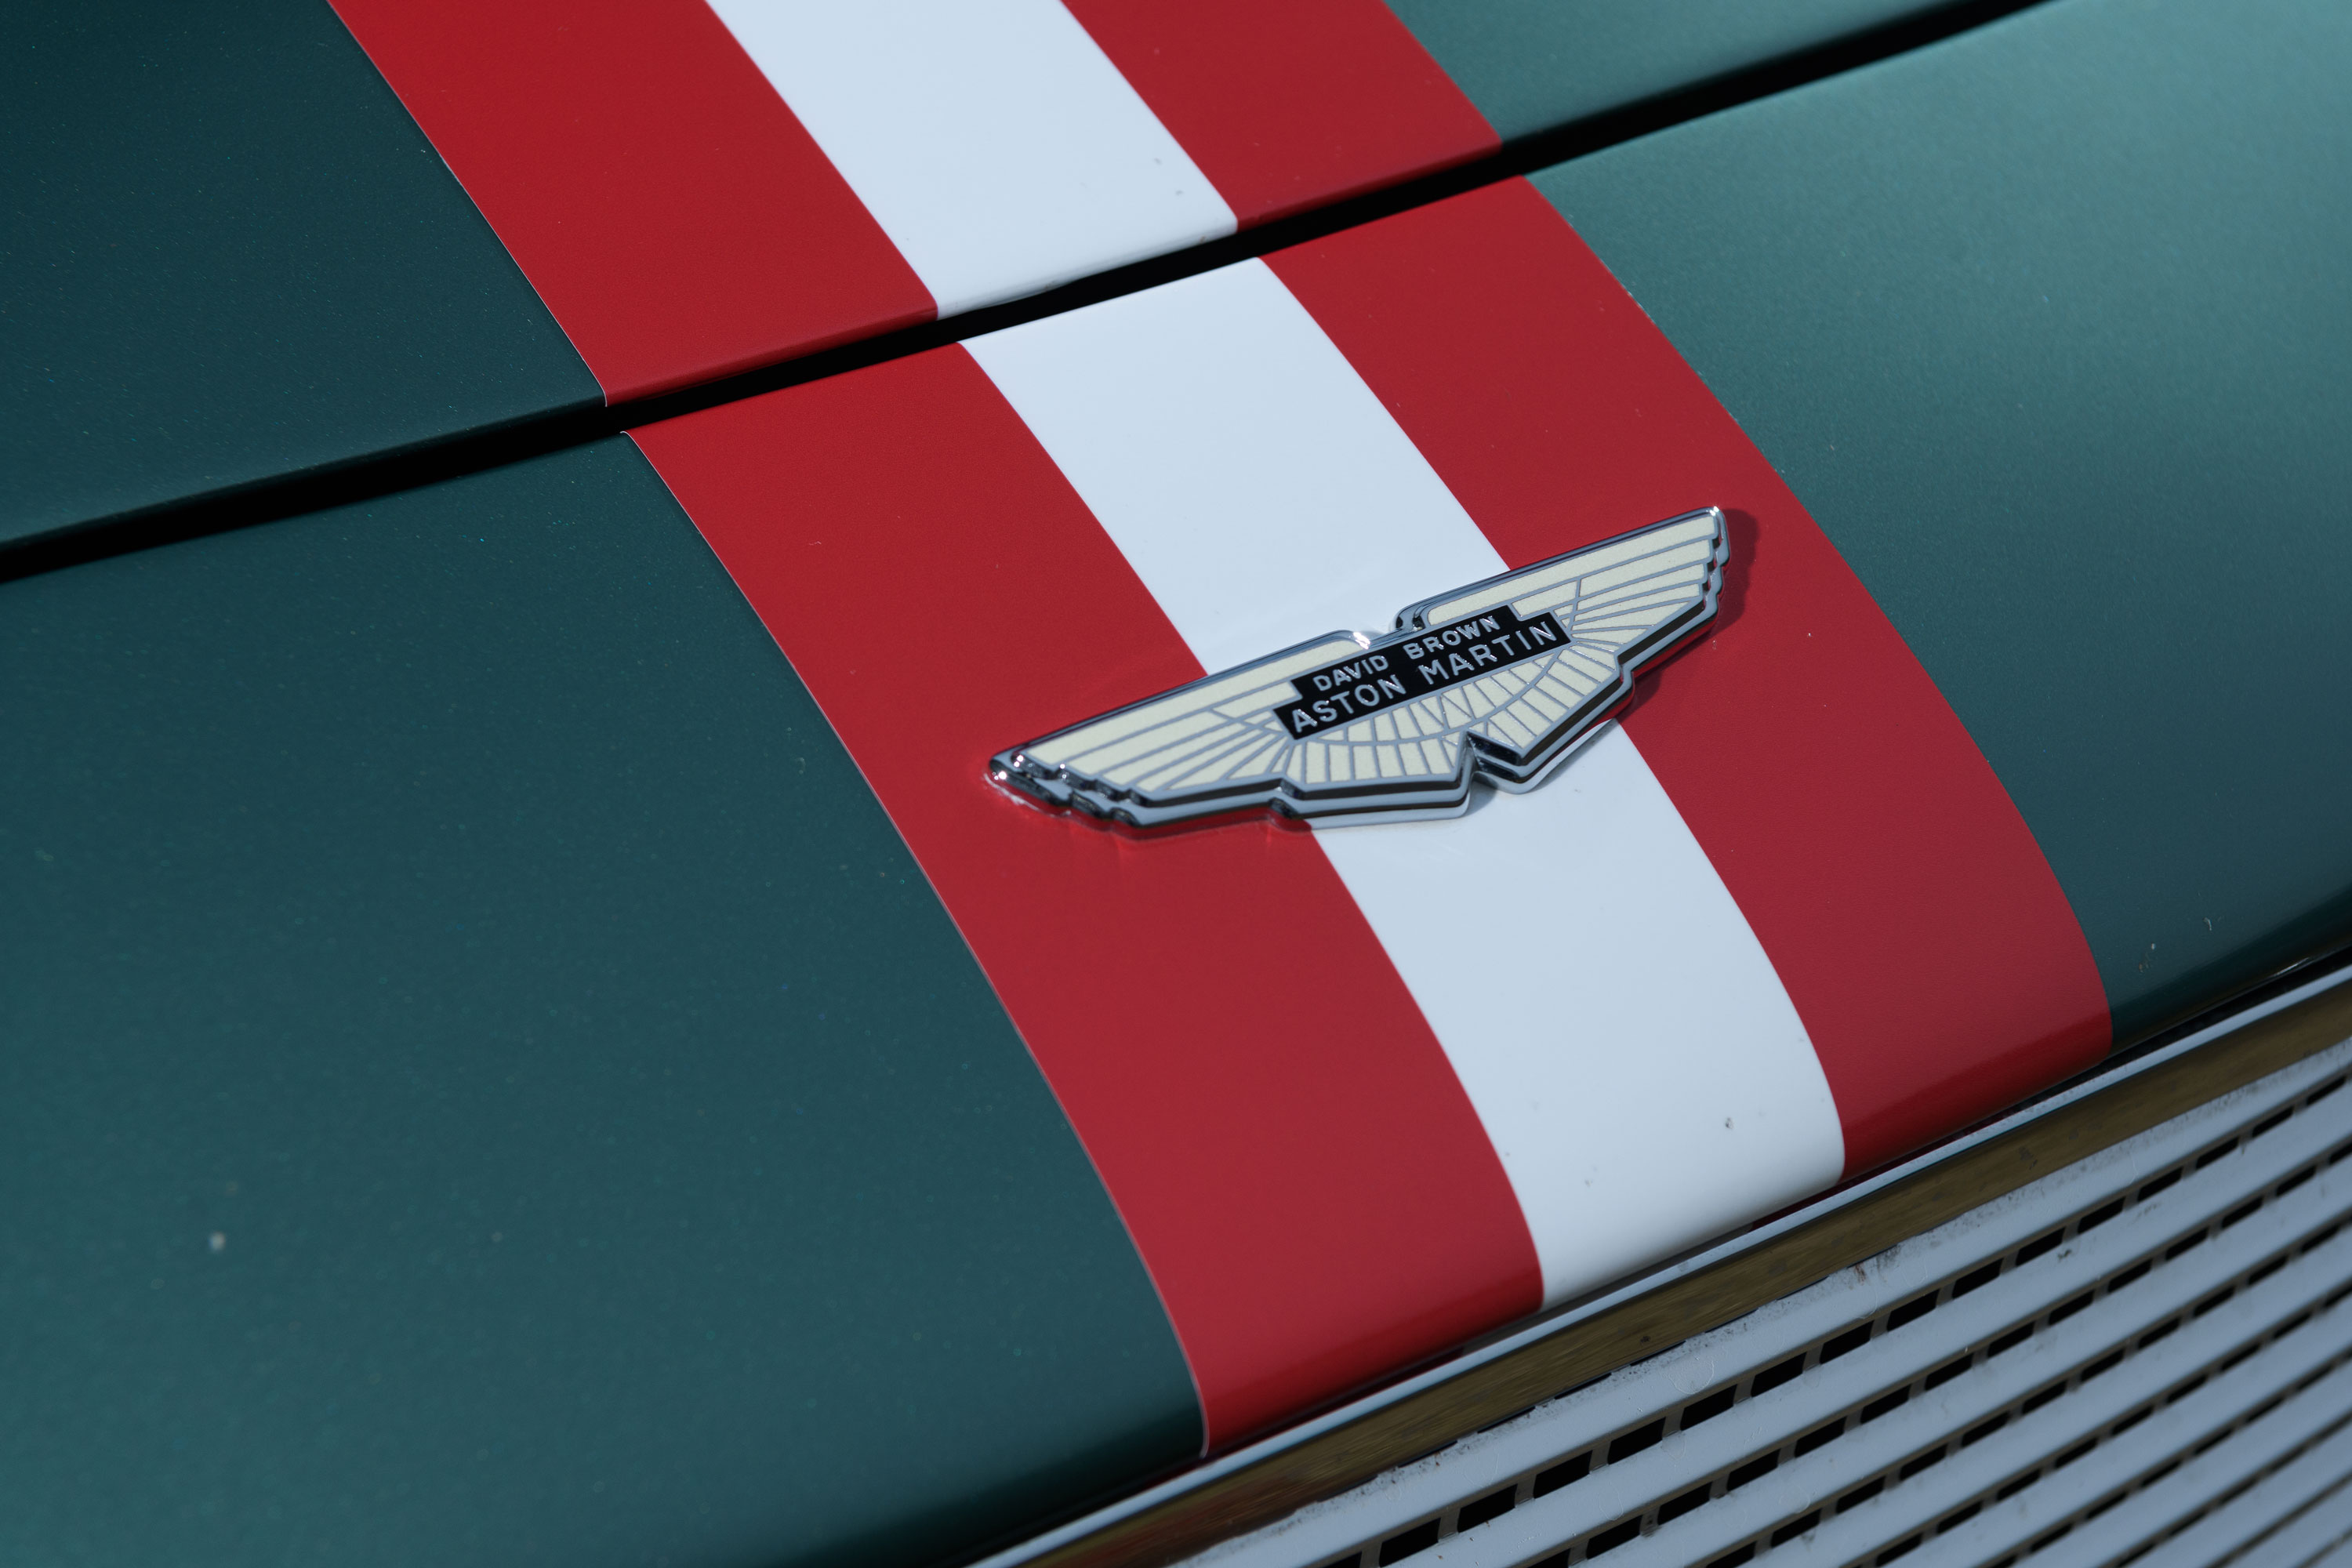 David Brown Aston Martin badge